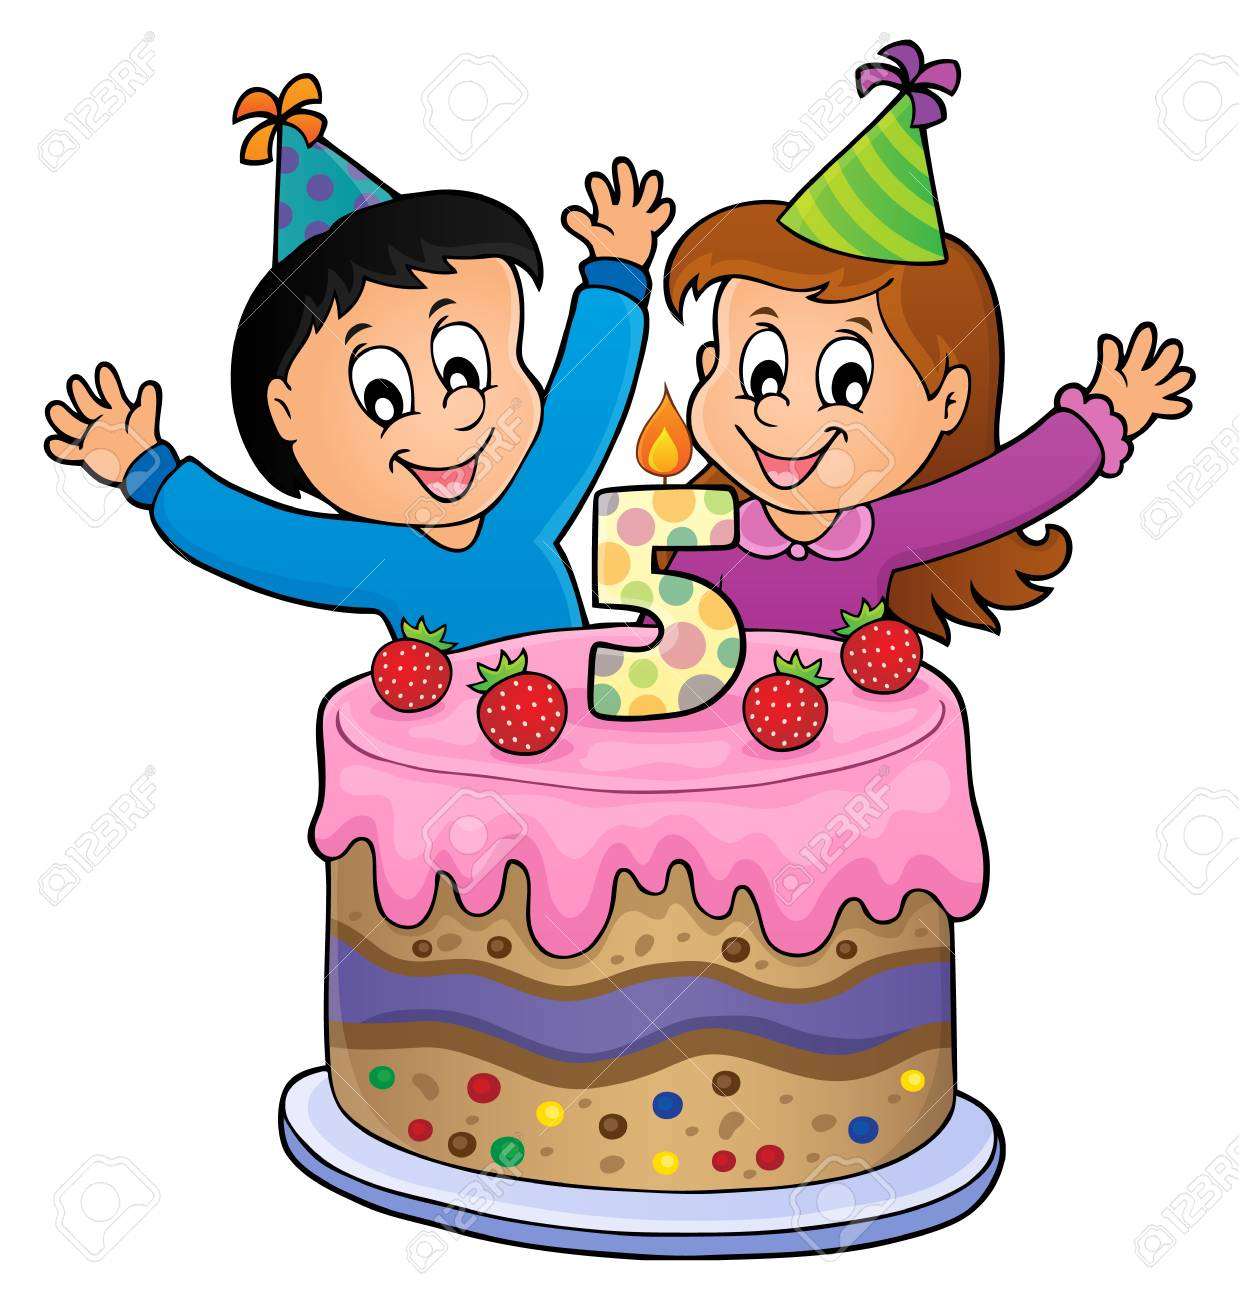 Two Kids Waving Hands In Front Of A Cake Happy Birthday Image